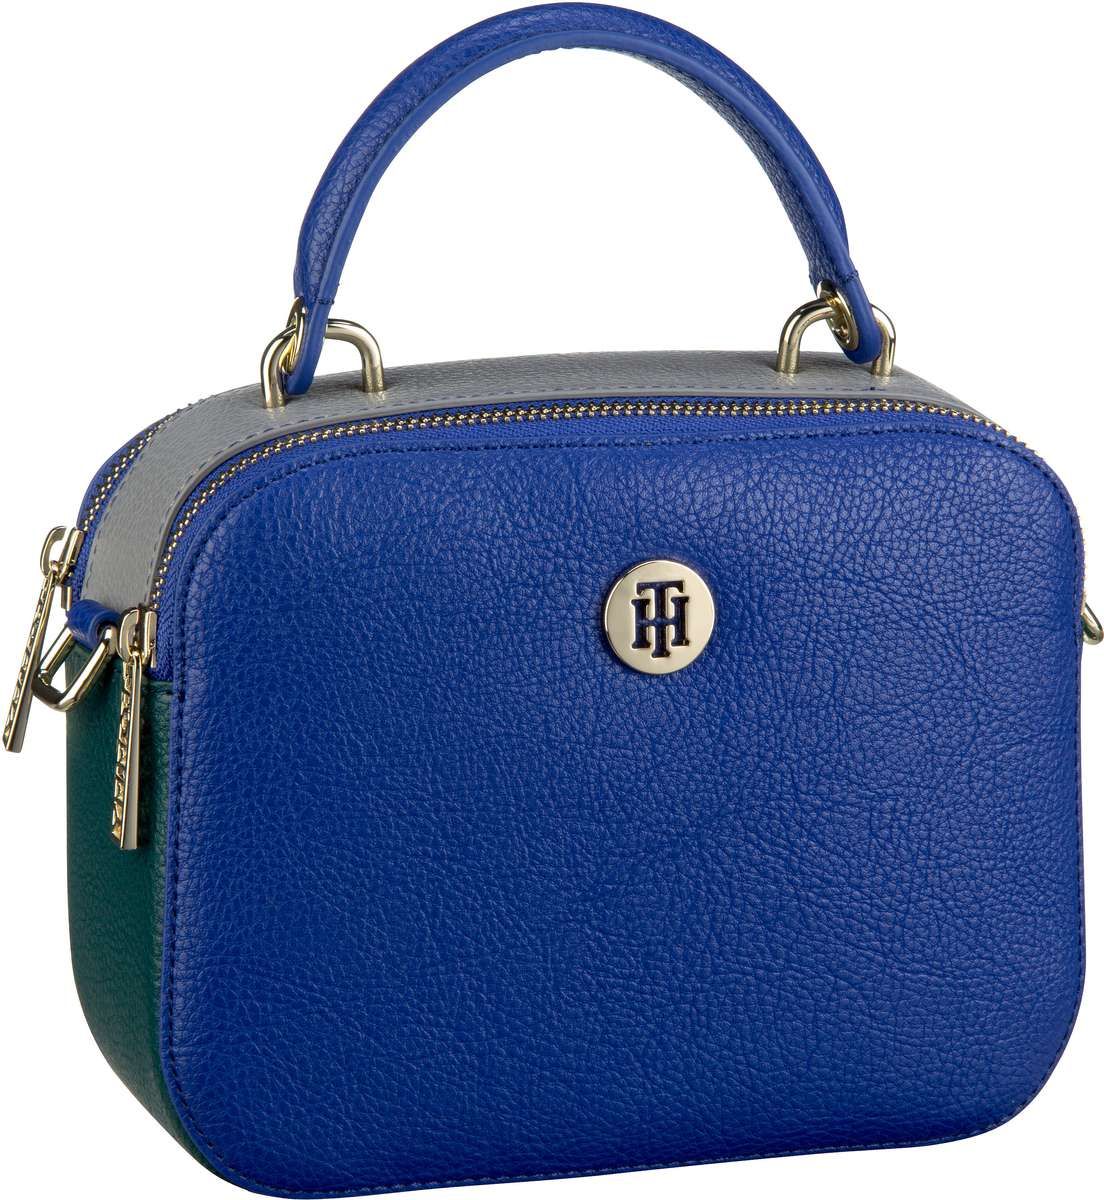 Handtasche TH Core Crossover 5653 Mazarine Blue